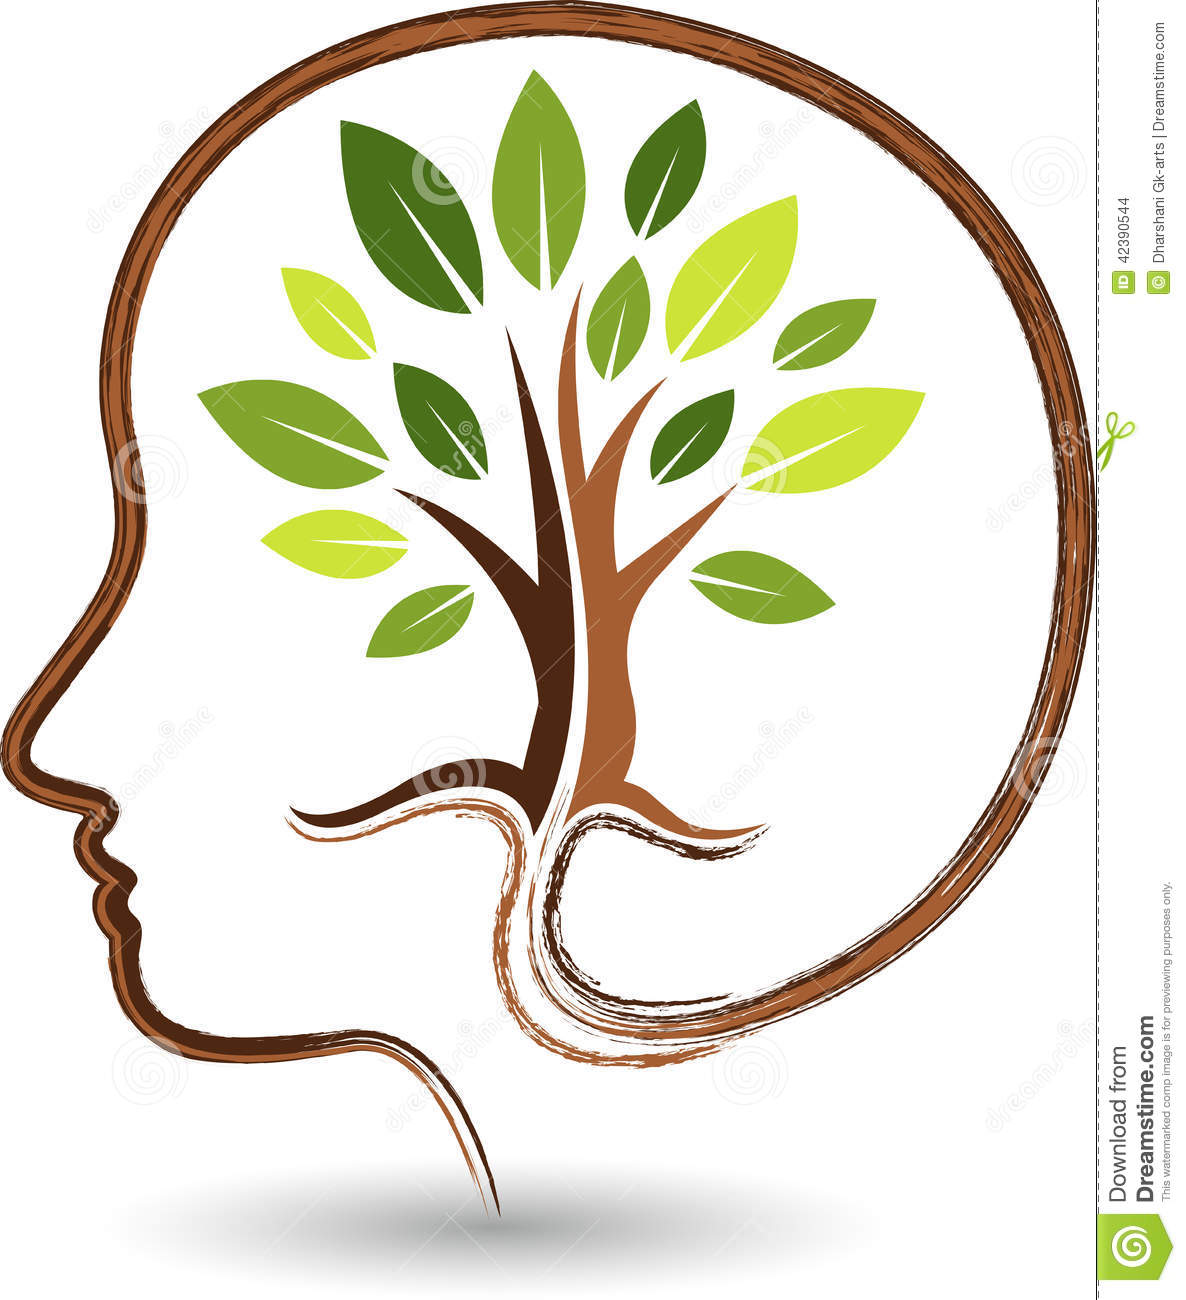 Illustration art of a mind tree logo with background.